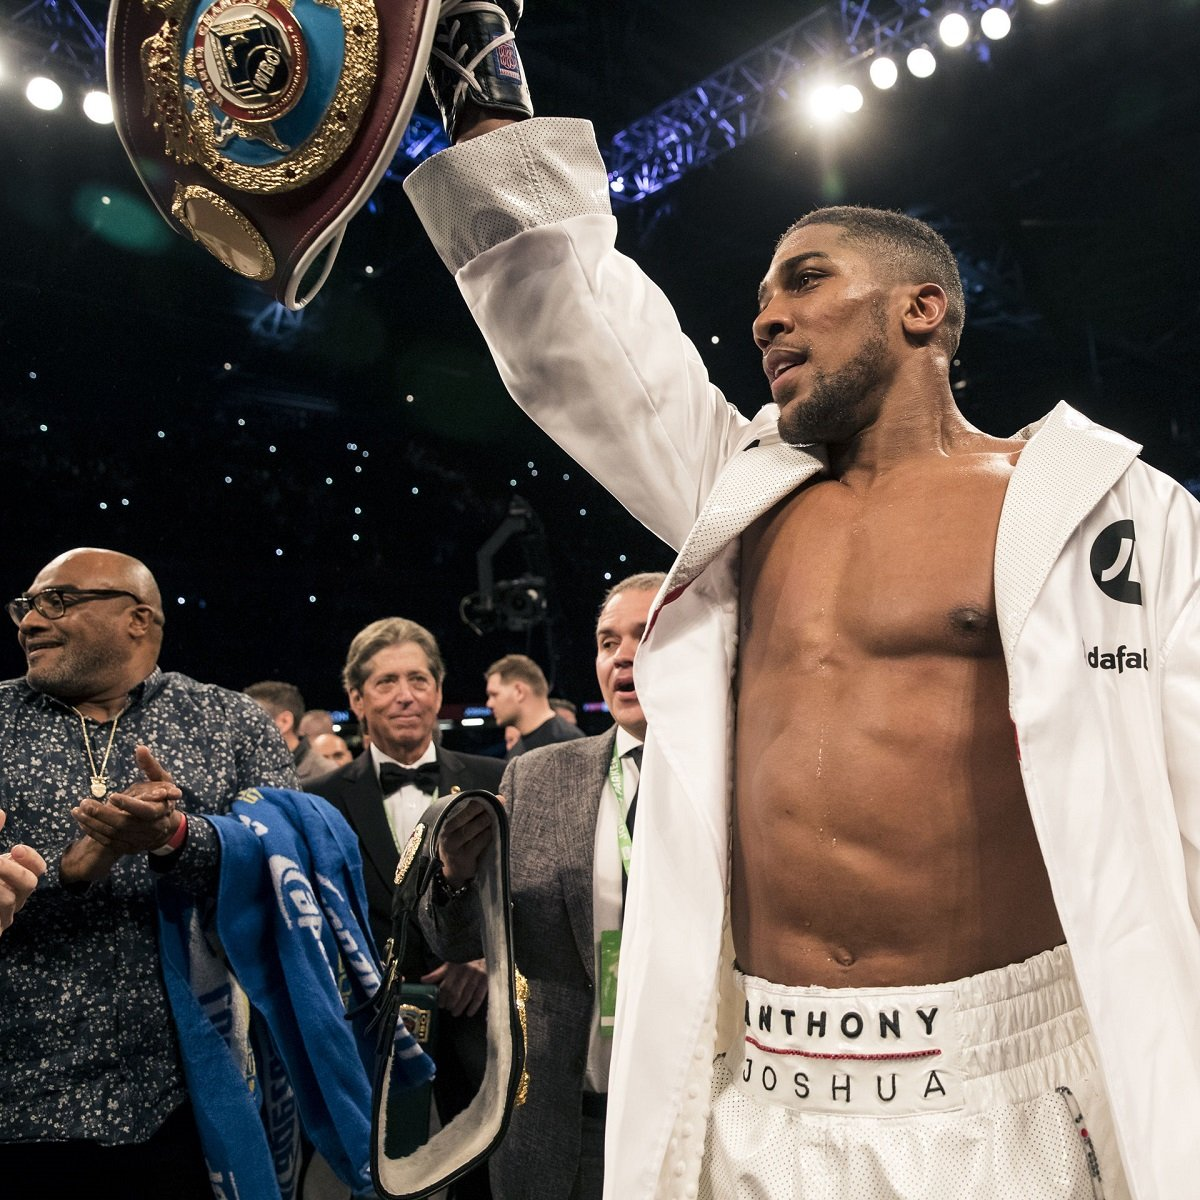 Muhammad Ali - Like many fighters before him, Anthony Joshua is a huge fight fan (it seems obvious a successful fighter would be a fan of his chosen sport but there are exceptions: Jermain Taylor for example, who said as champ that he is no boxing fan) - and AJ is also a student of the history of boxing.